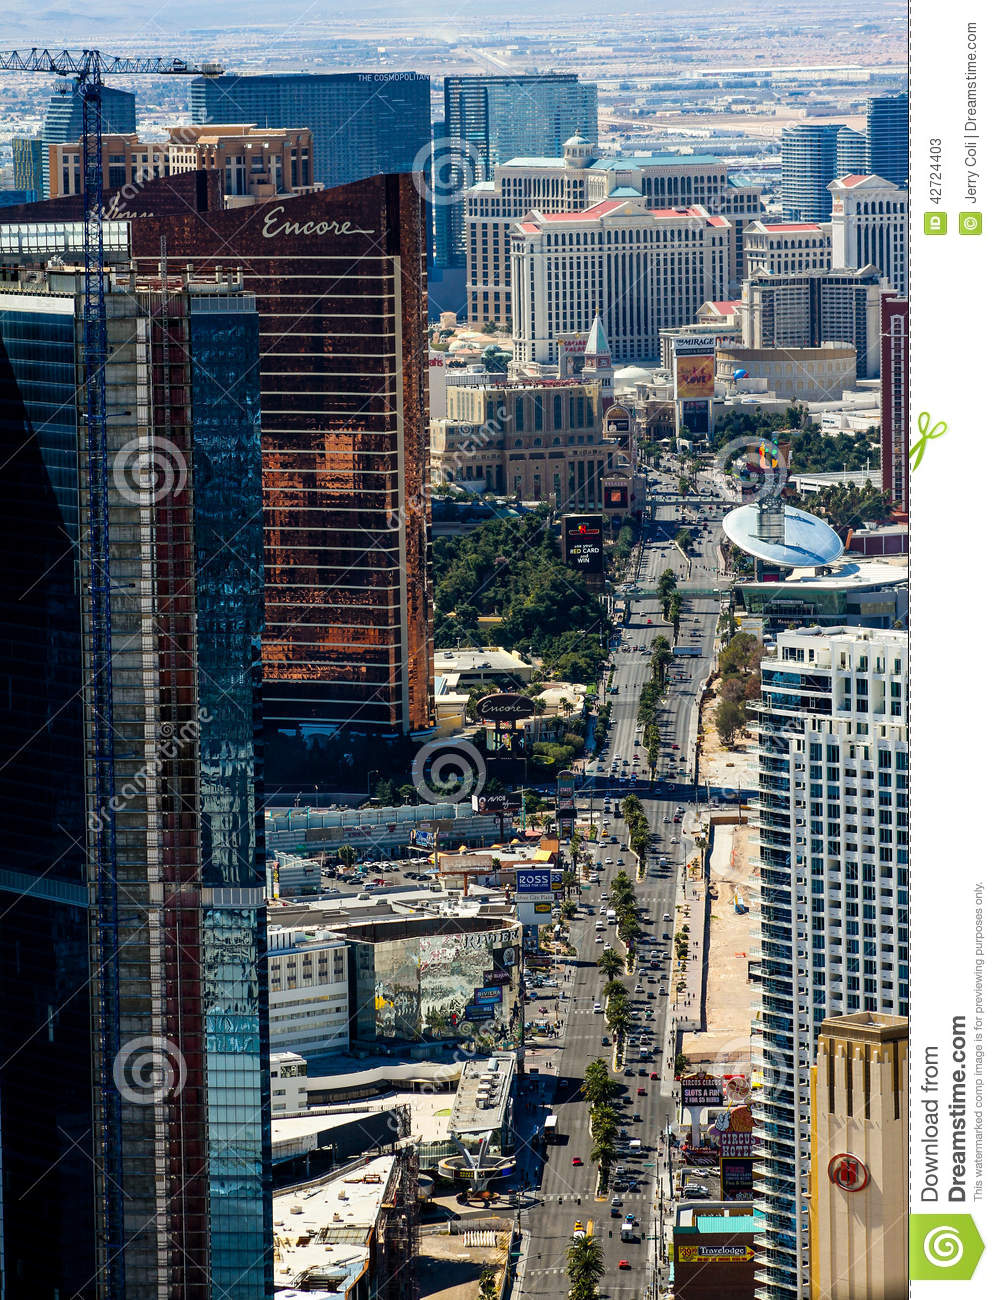 Casinos And Restaurants On The Strip In Las Vegas Nv